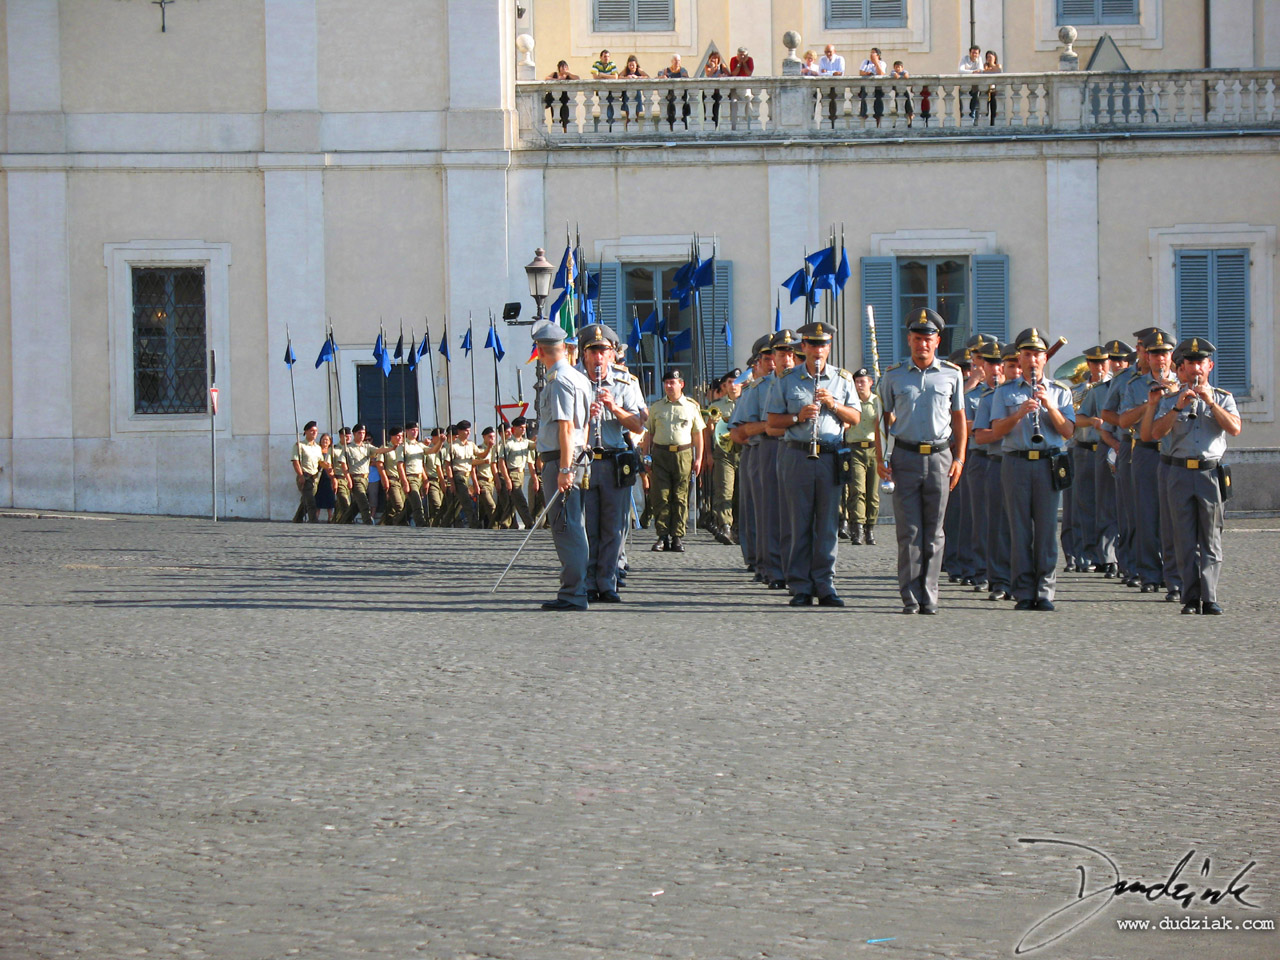 soldiers,  Roma,  Italy,  Italian Soldiers,  changing of the guard,  Rome,  Palazzo Quirinale